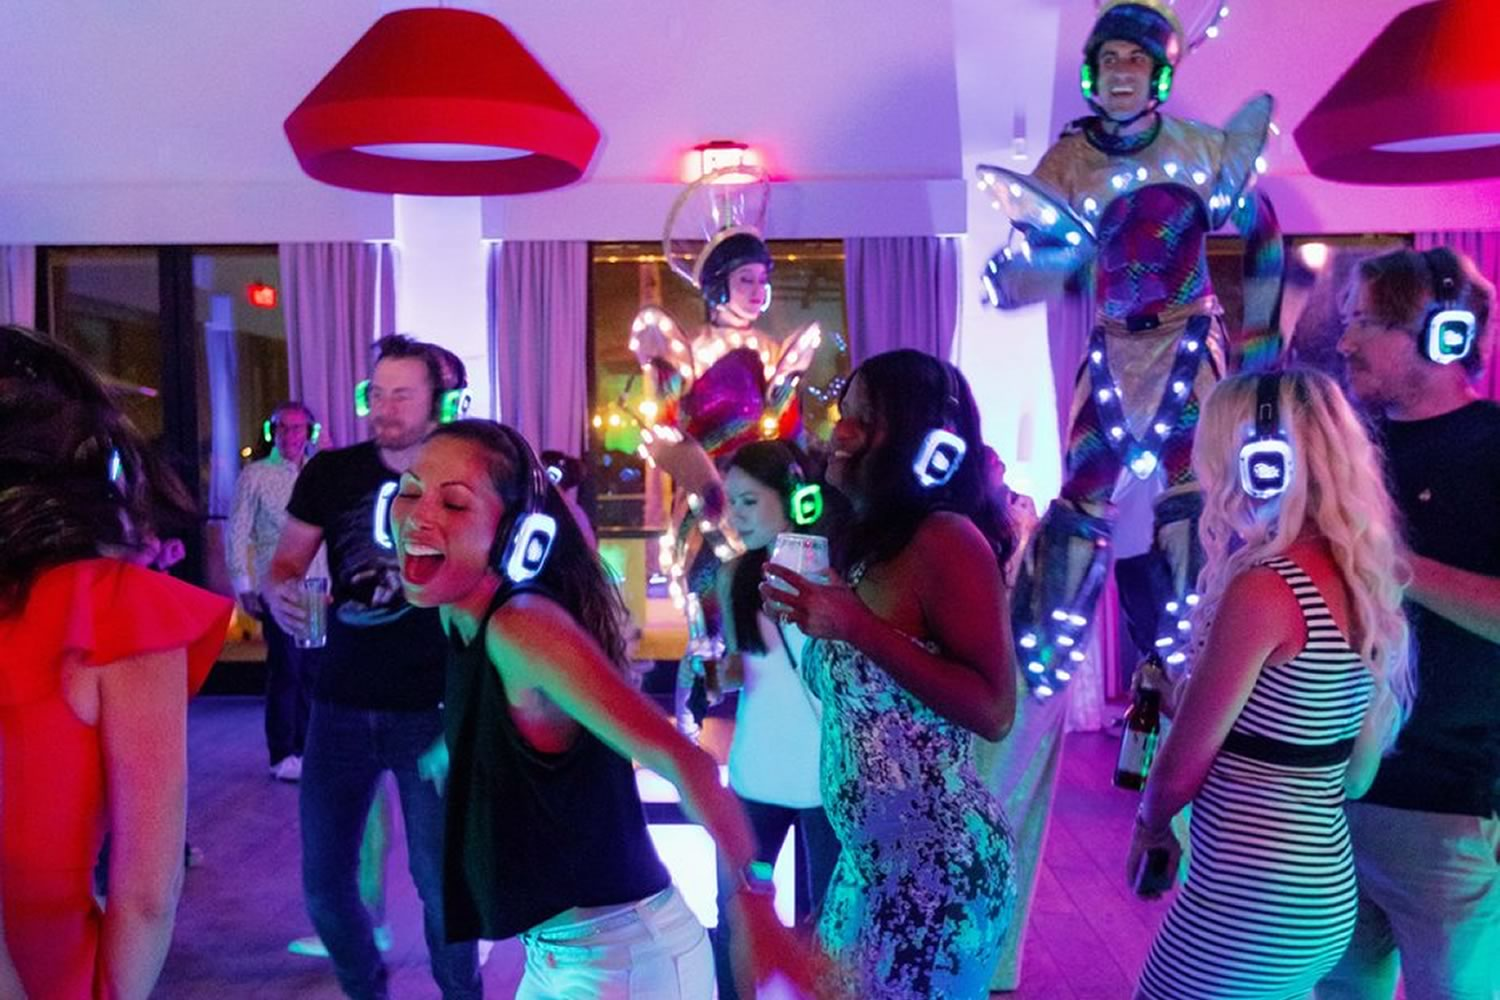 Top 5 Reasons to Have a Silent Party - Silent Party USA